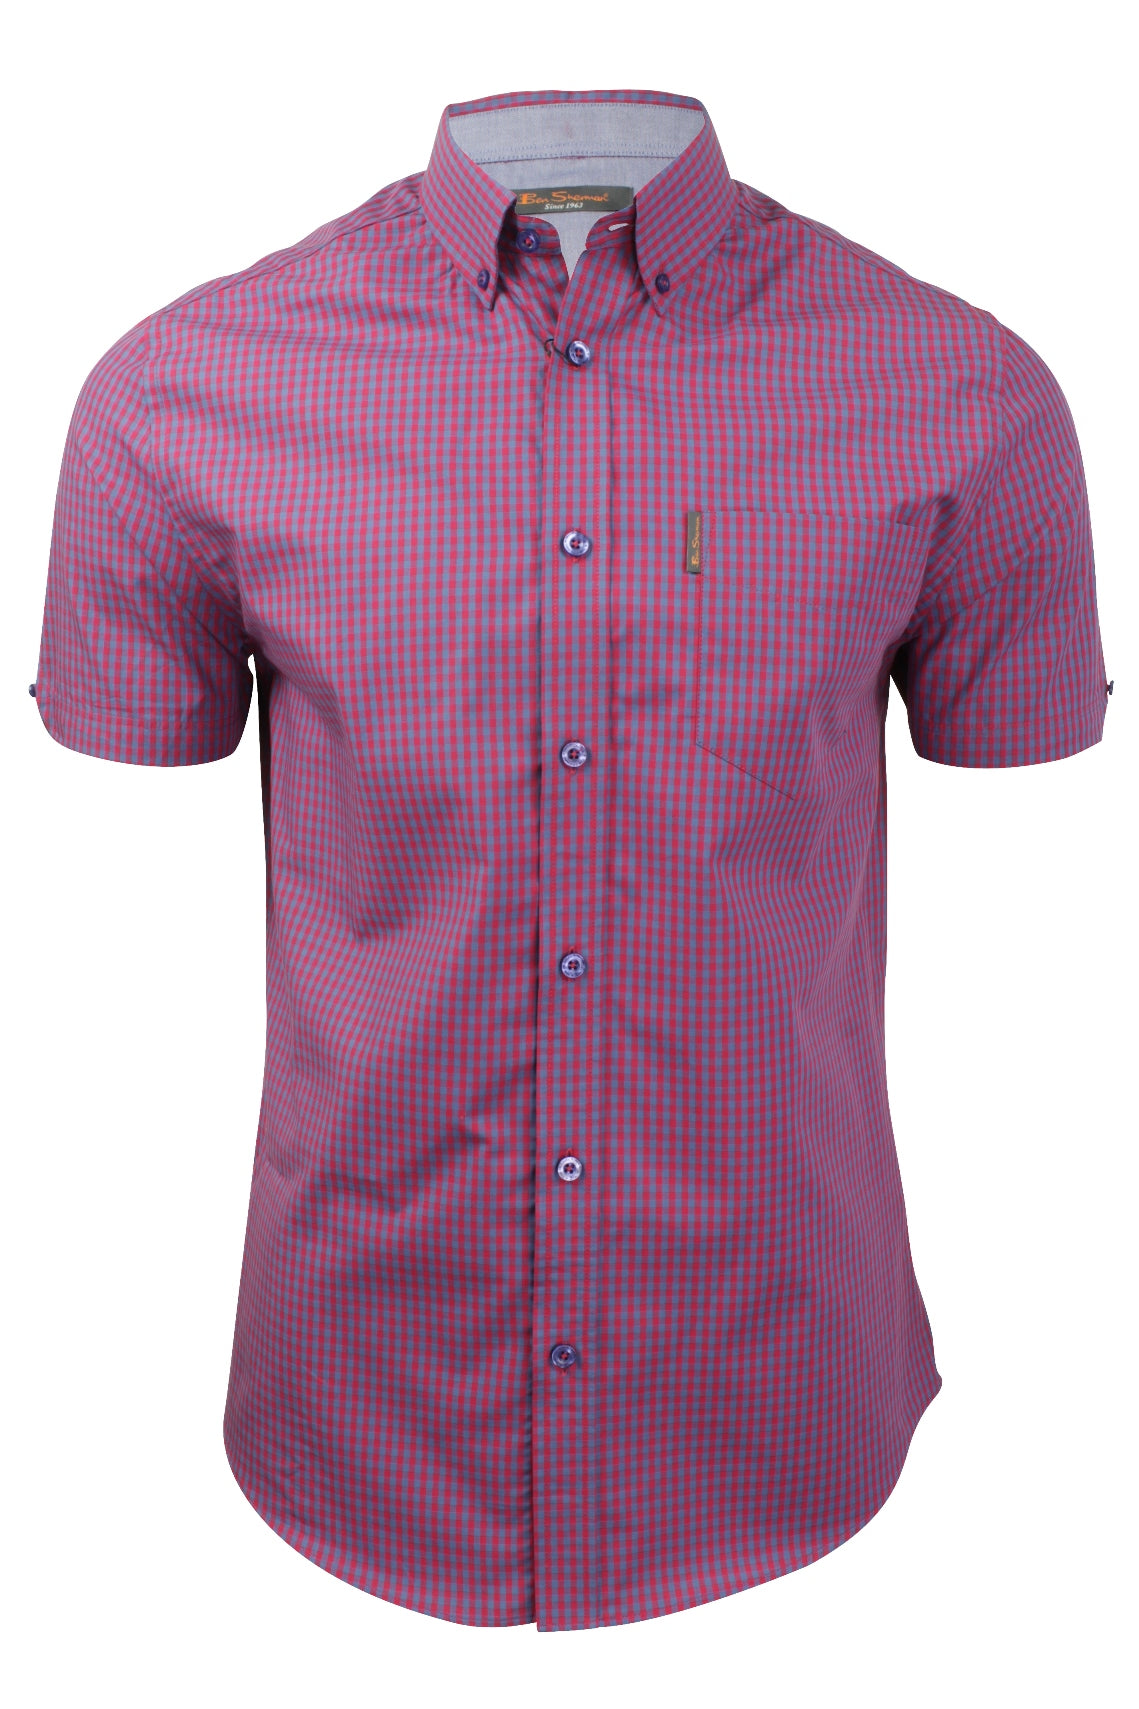 Mens Gingham Check Shirt by Ben Sherman Short Sleeved-Main Image